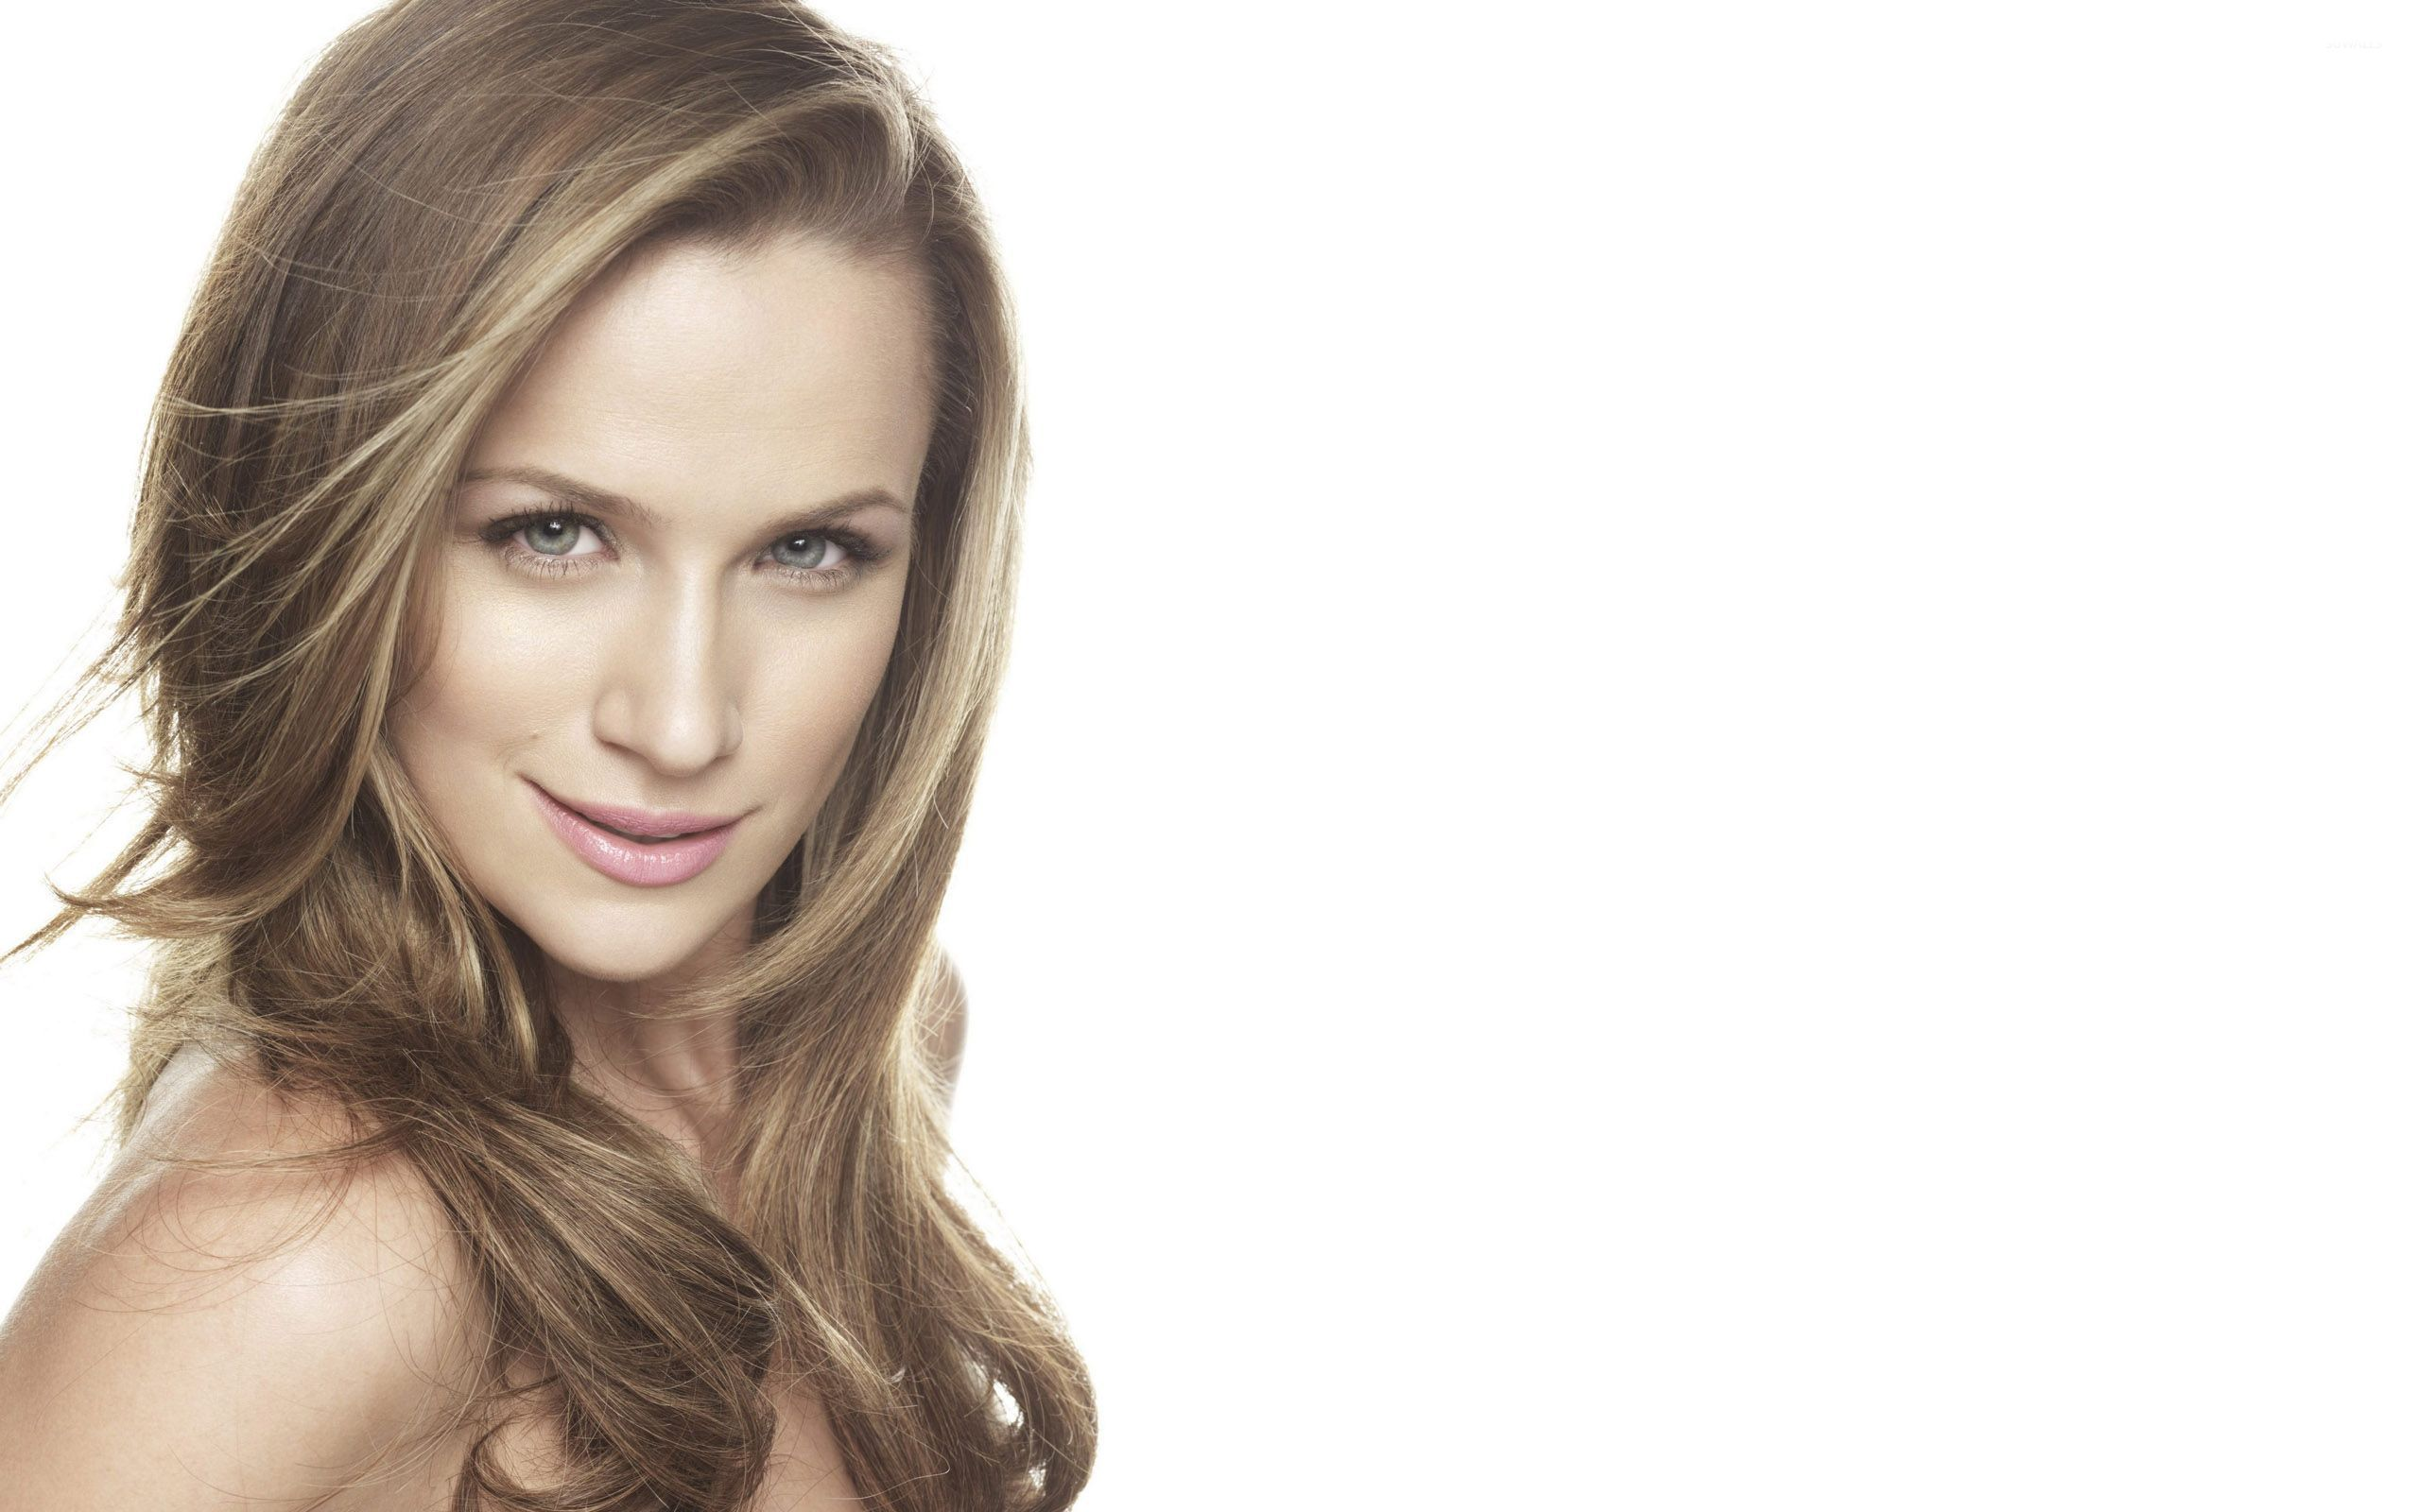 78 Shantel Vansanten Wallpaper On Wallpapersafari